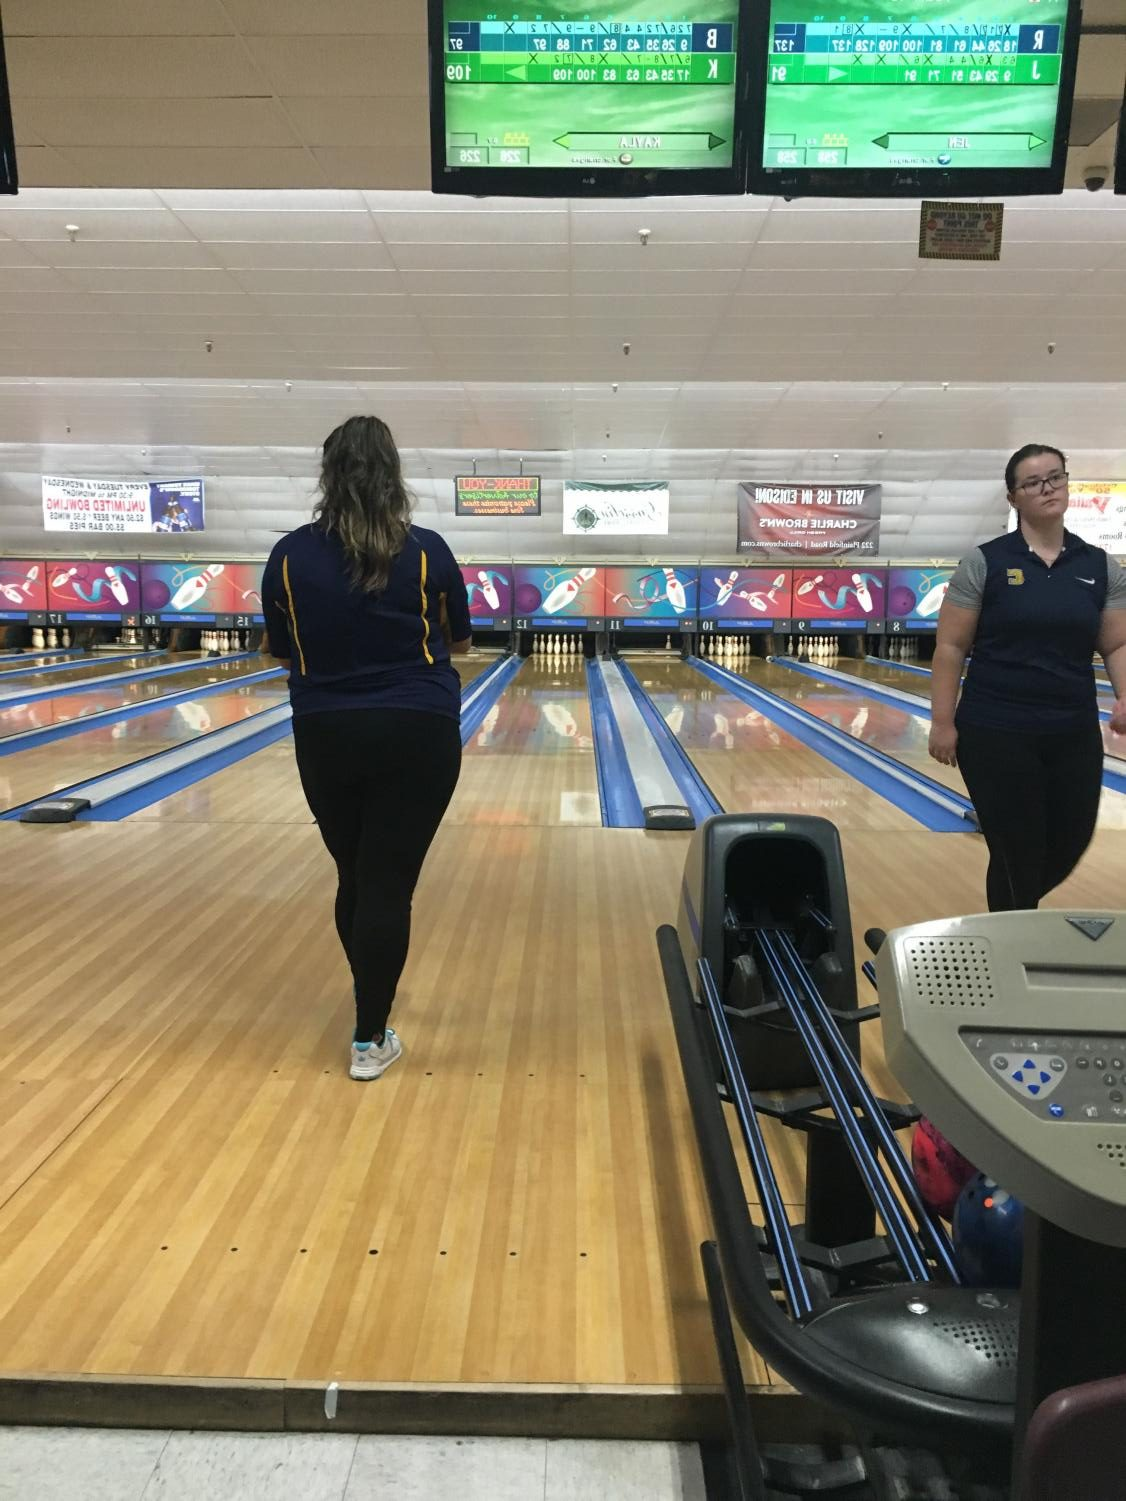 Focusing on bowling, Junior Kayla Soto is ready to get a strike.